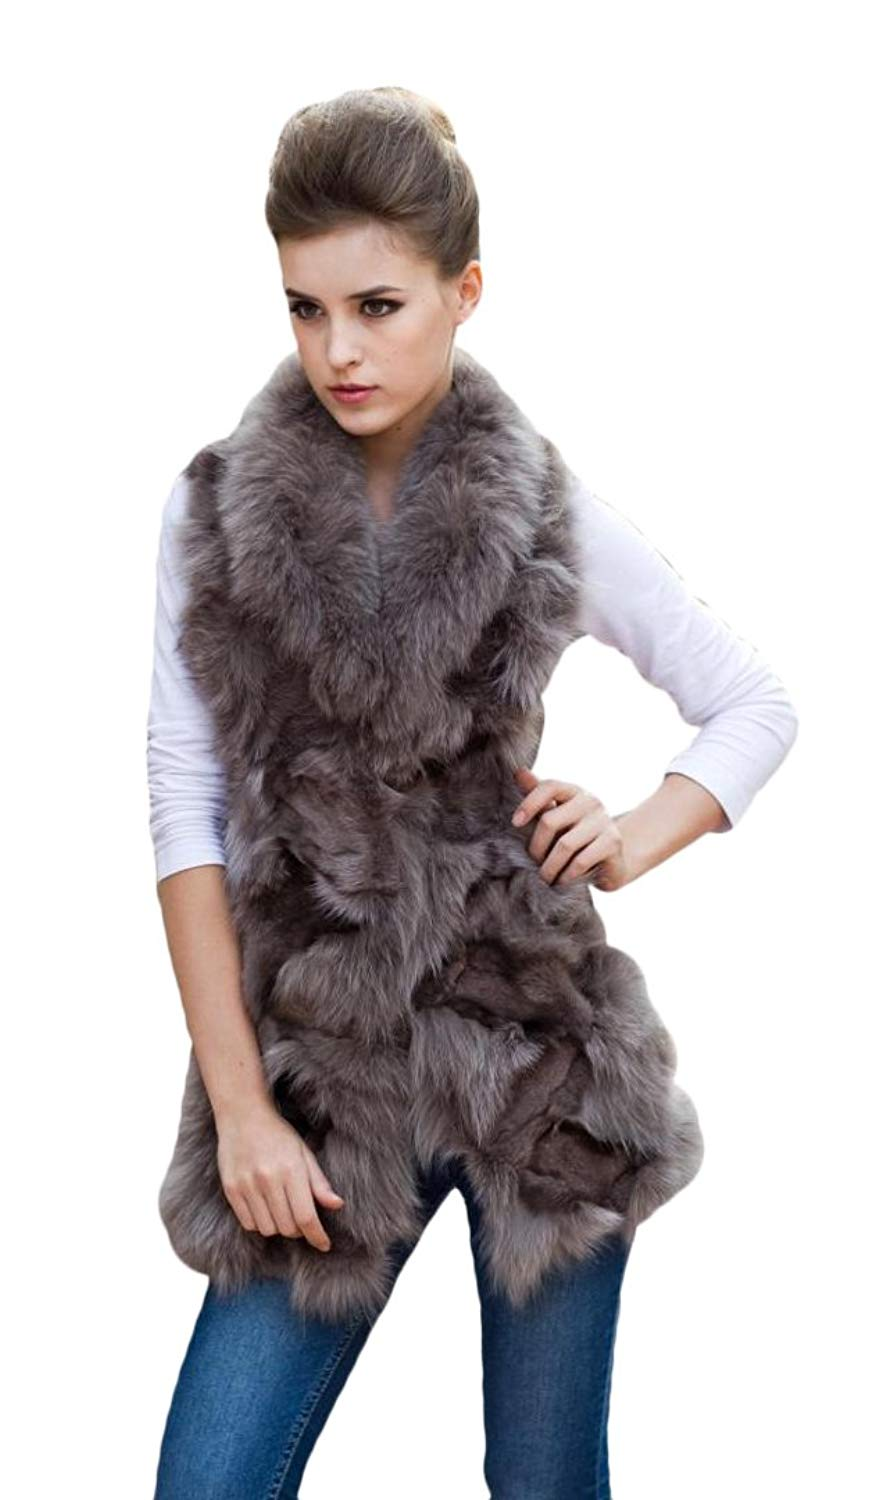 de2ab8bb3e3 Get Quotations · Queenshiny Long Women's 100% Real Fox Fur and Sheep Skin  Vest with Fox Collar